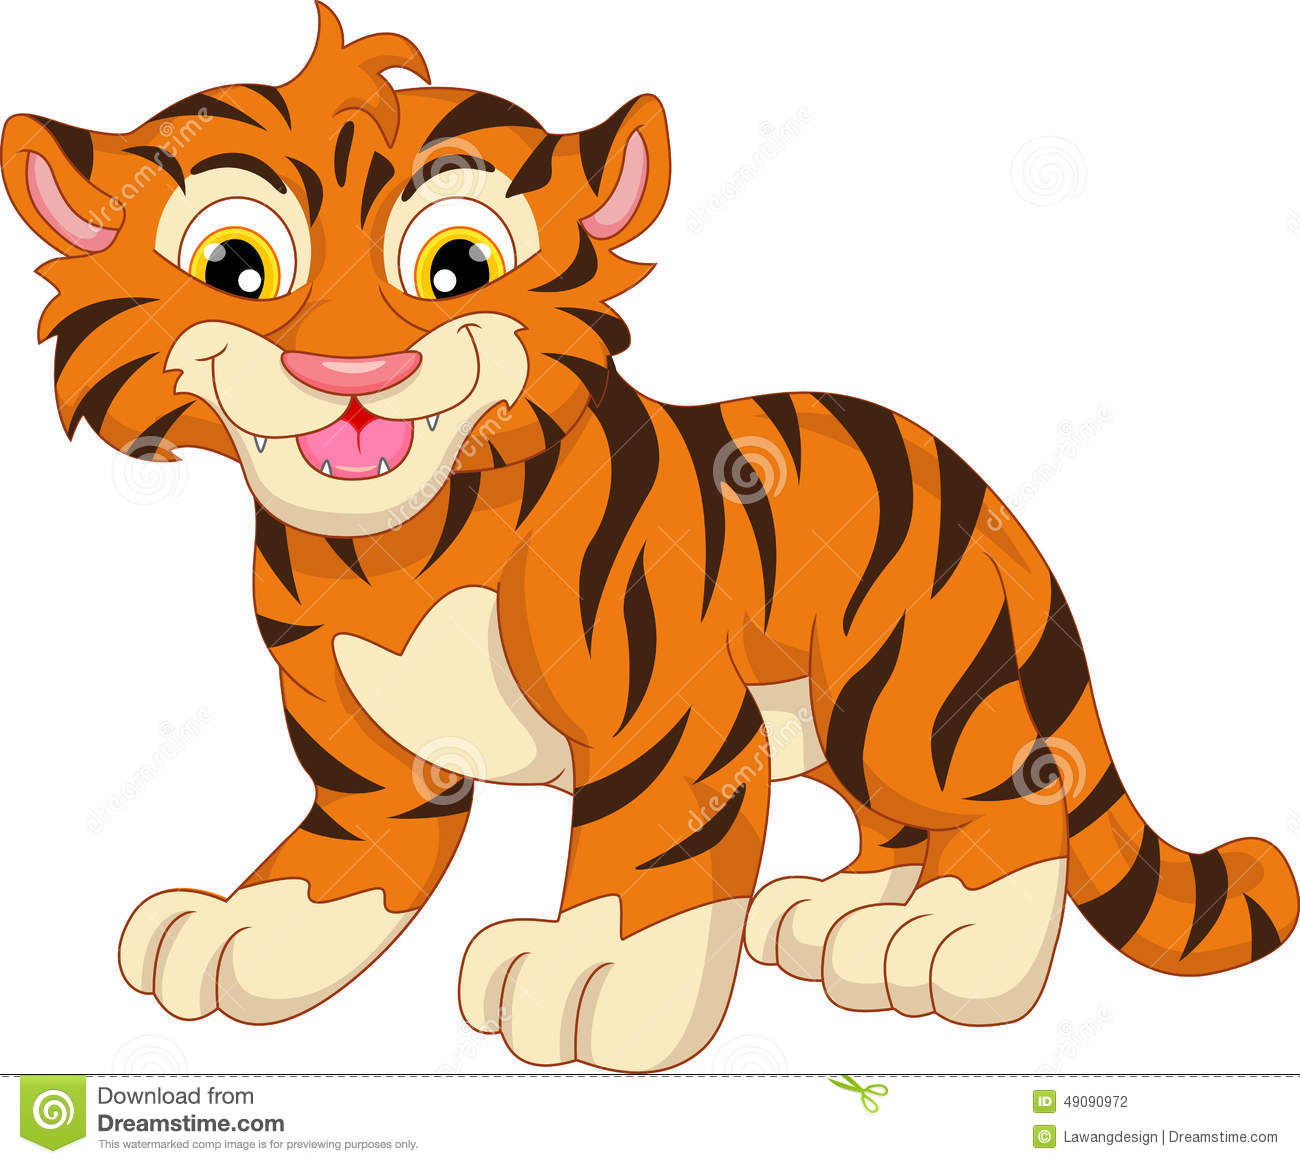 Cute Baby Tiger Cartoon Stock Vector - Image: 49090972